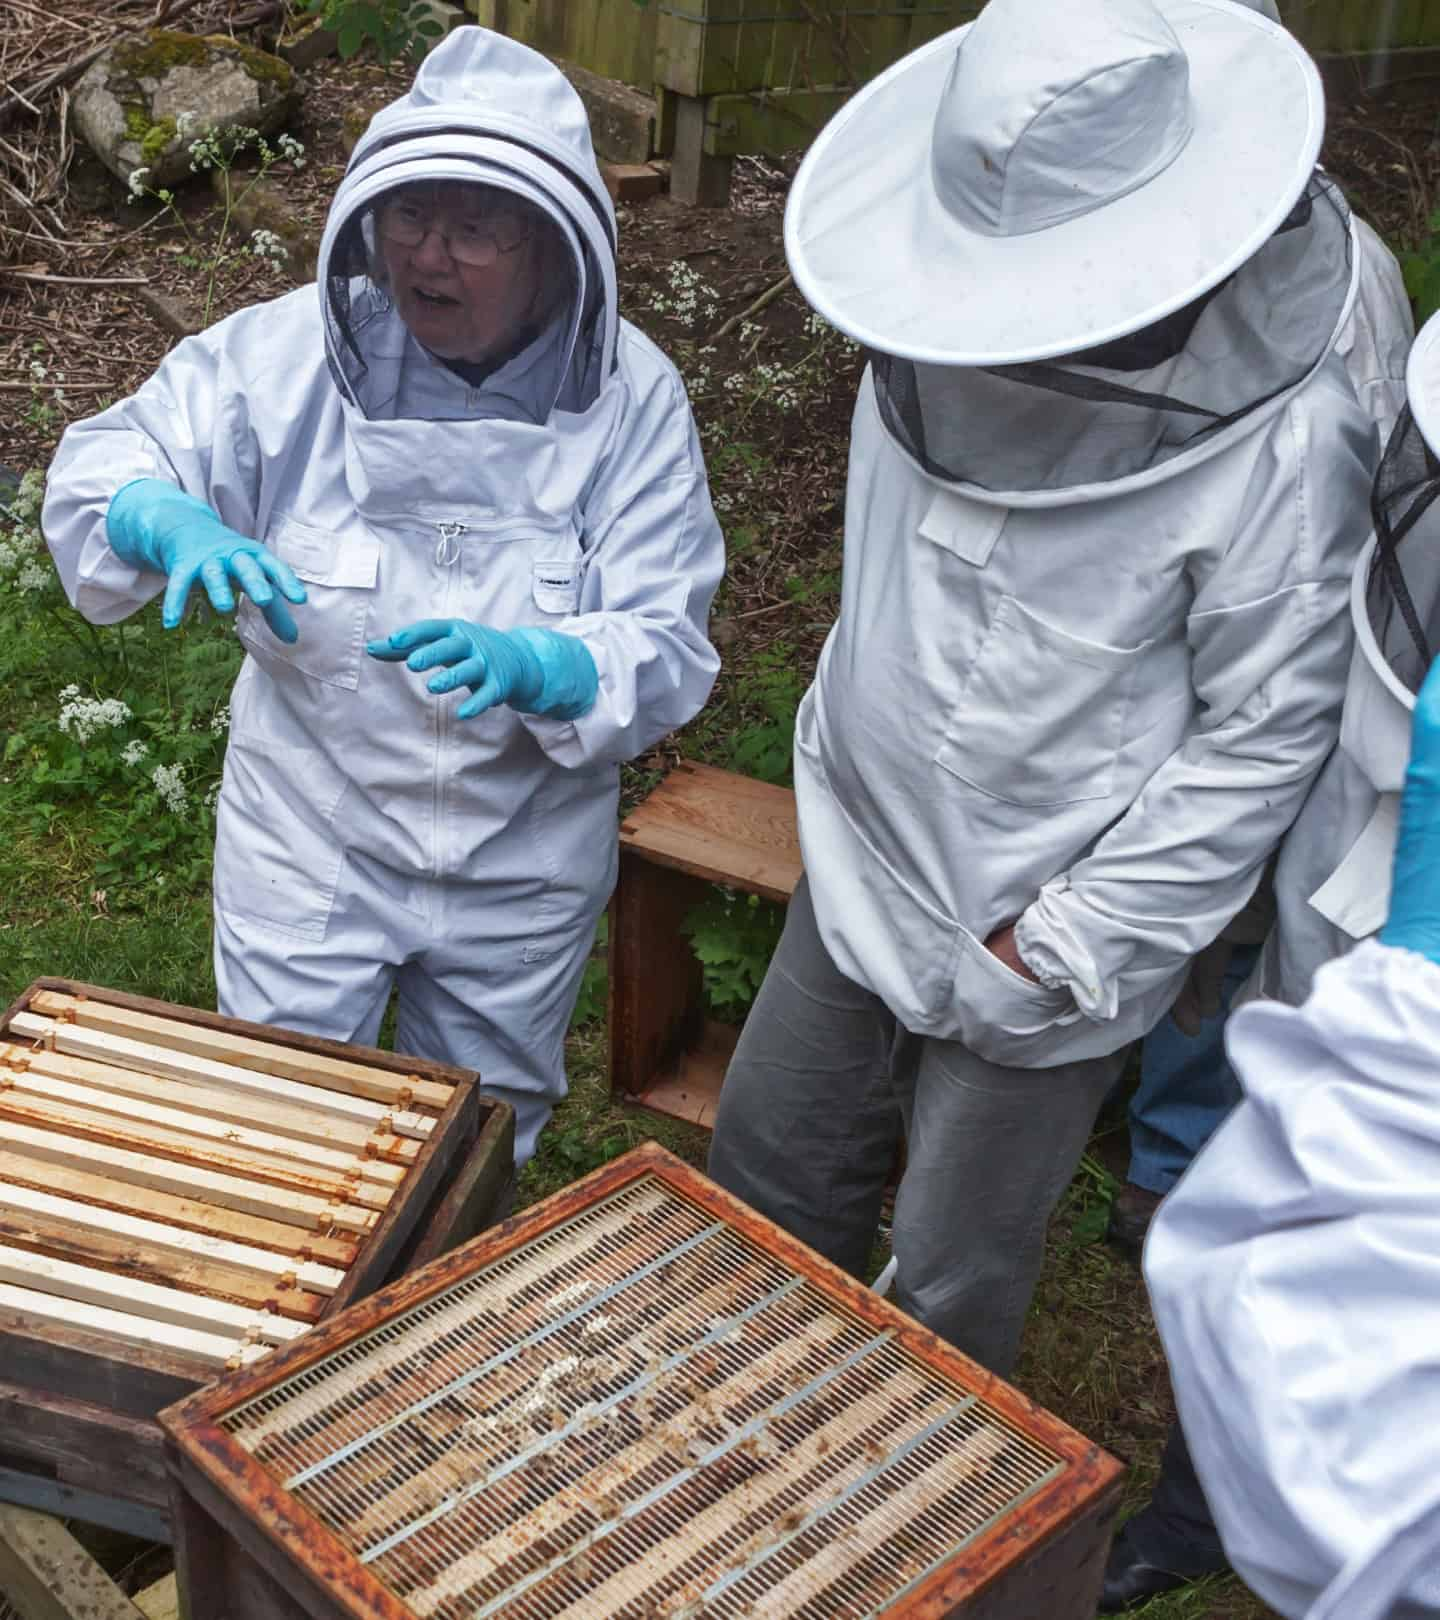 image_1440_apiary_education_02